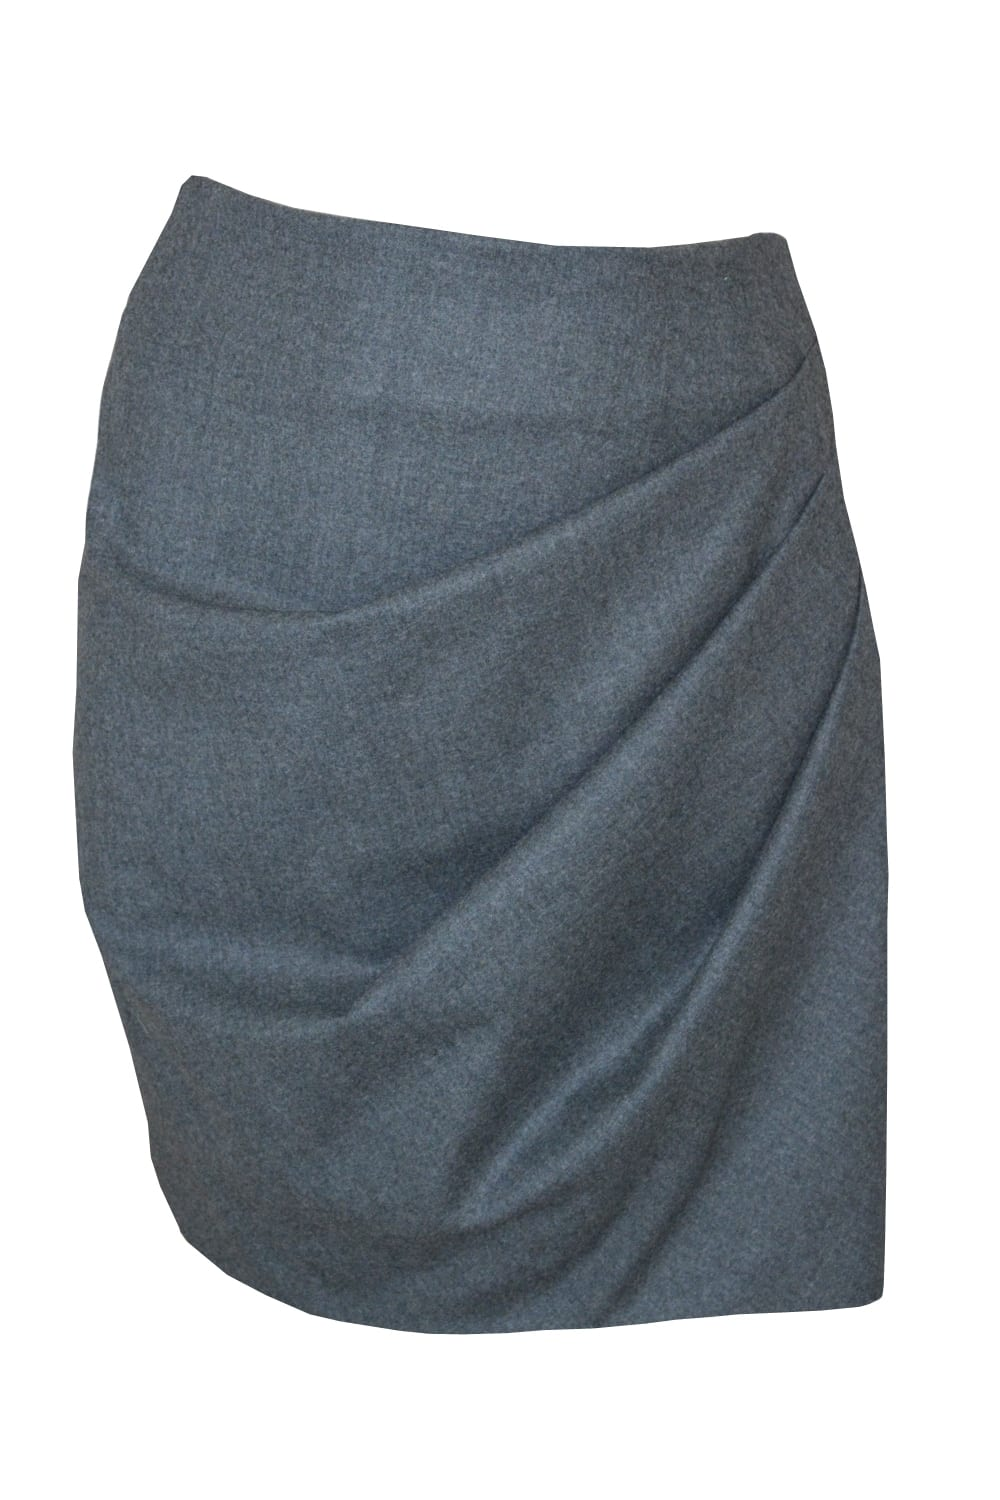 Short - skirt draped on the front in gray flannel.